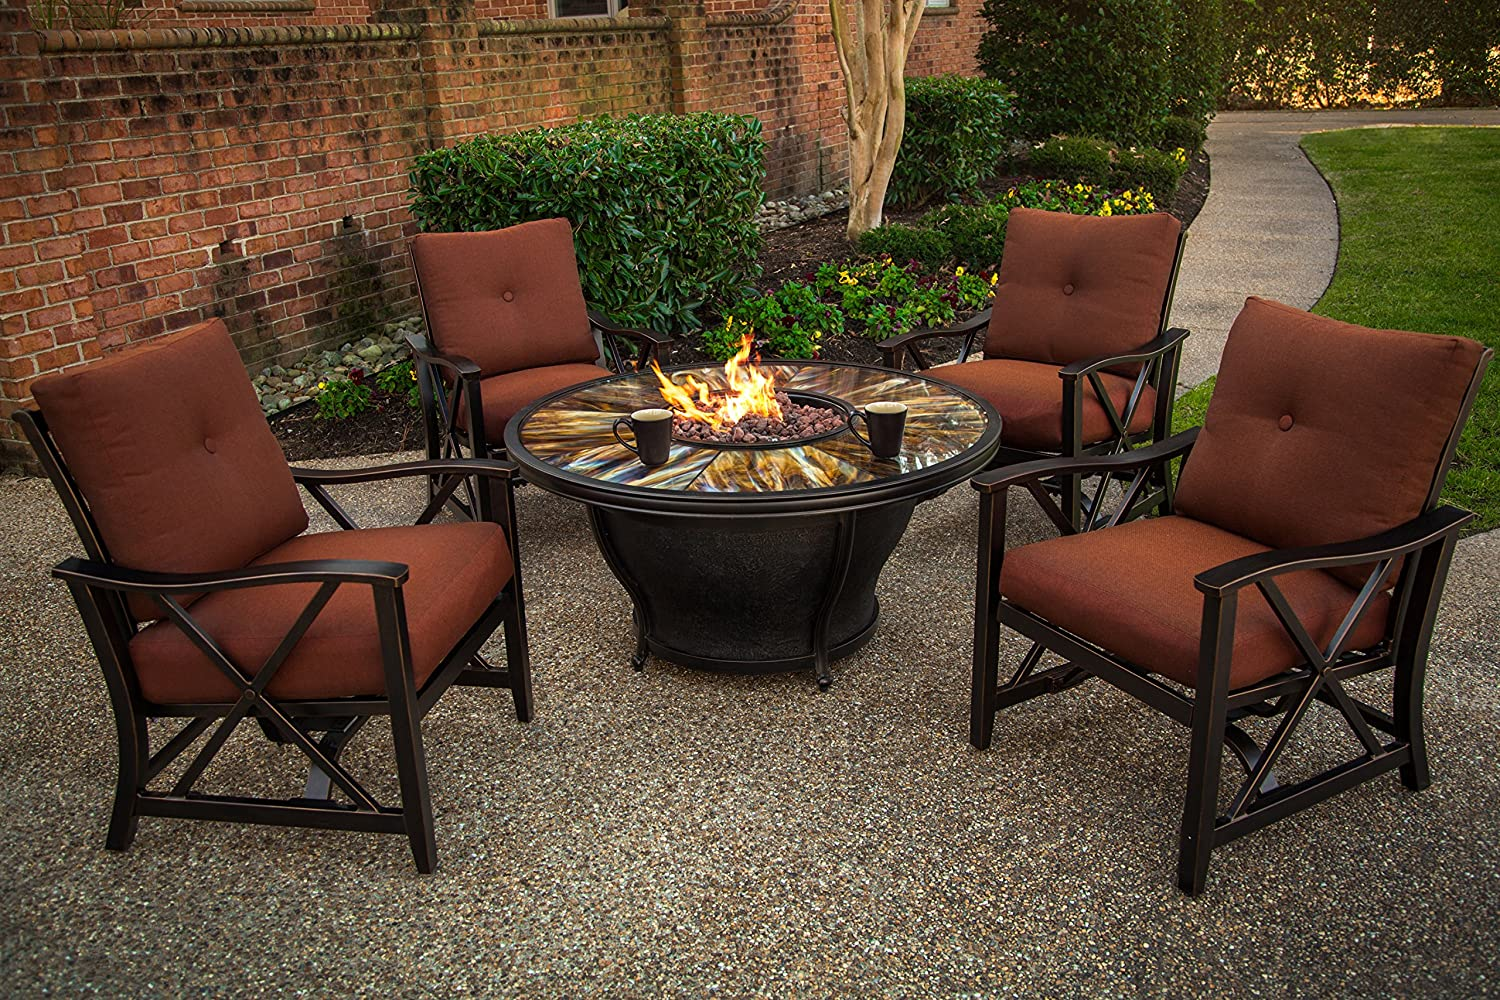 Amazon.com : Oakland Living Moonlight Round Gas Firepit Table With Burner,  Antique Bronze : Garden U0026 Outdoor